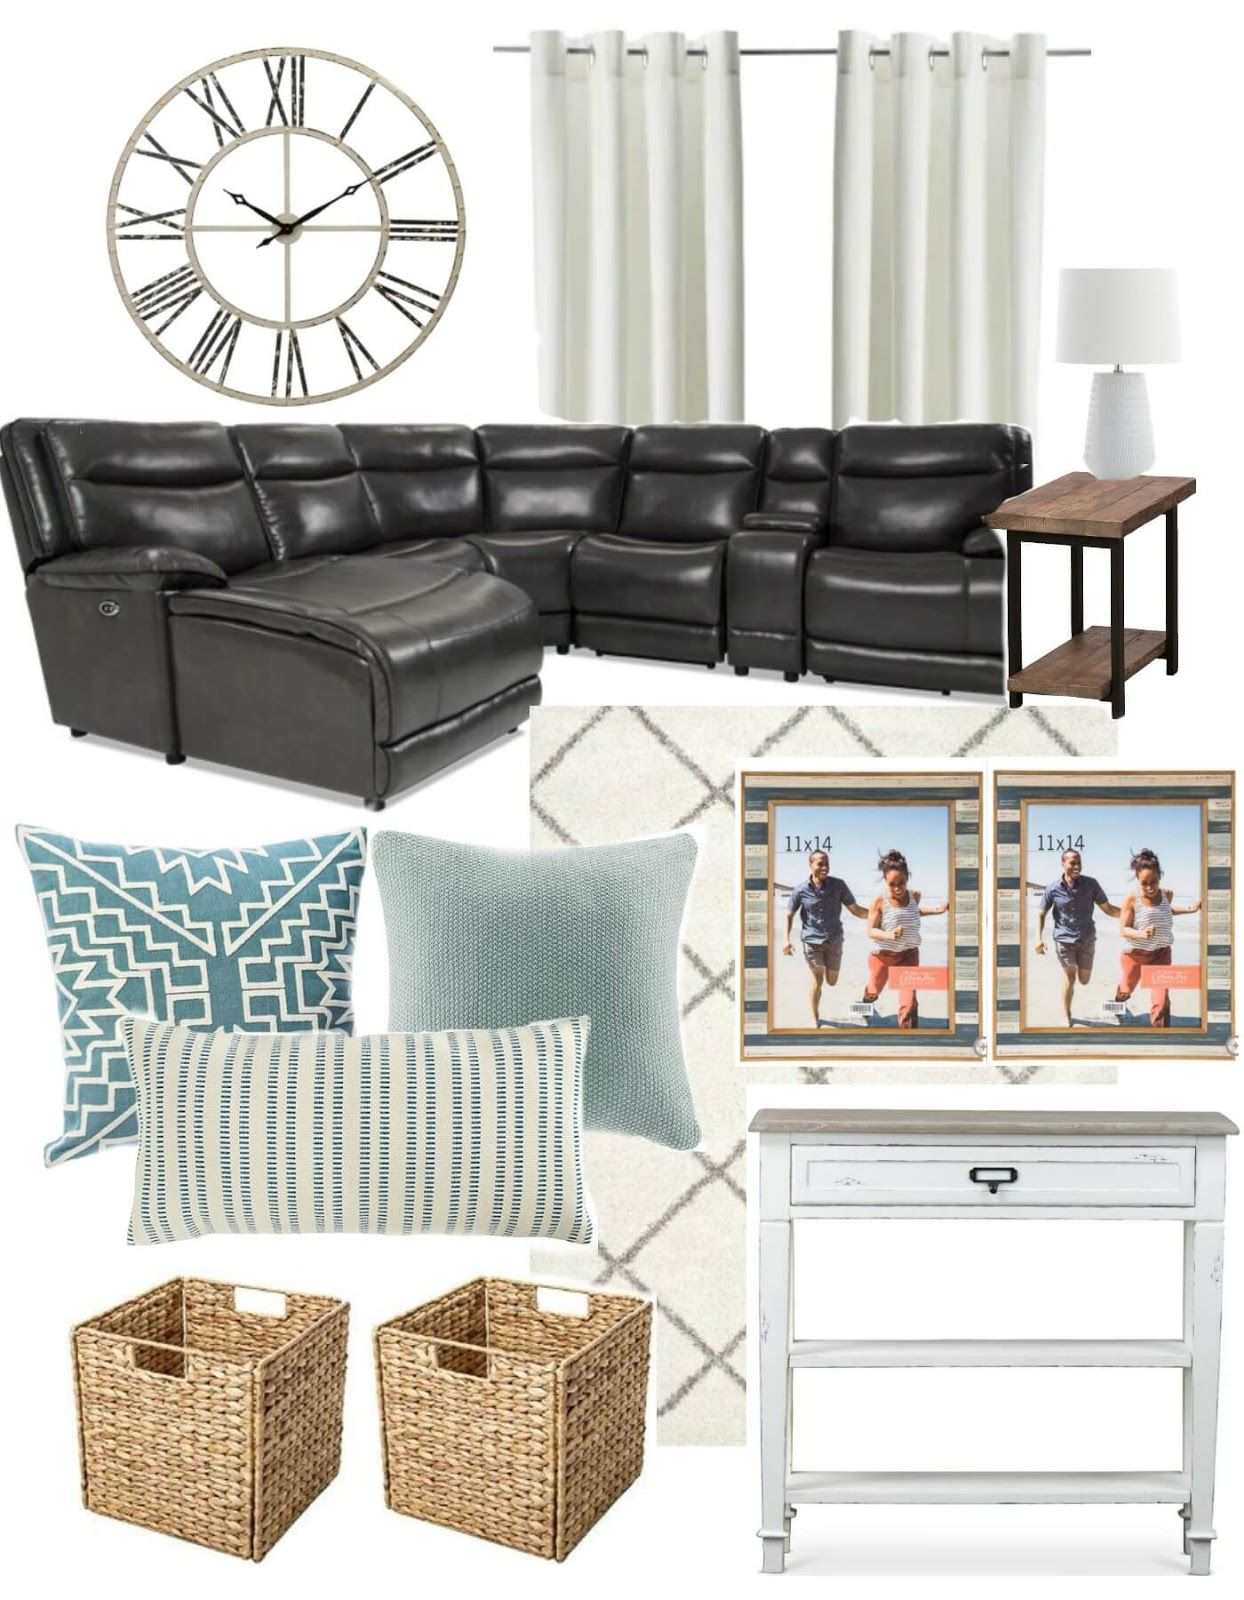 Decorating Around A Leather Couch Black Couch Living Room Decor Leather Couches Living Room Black Leather Couch Living Room